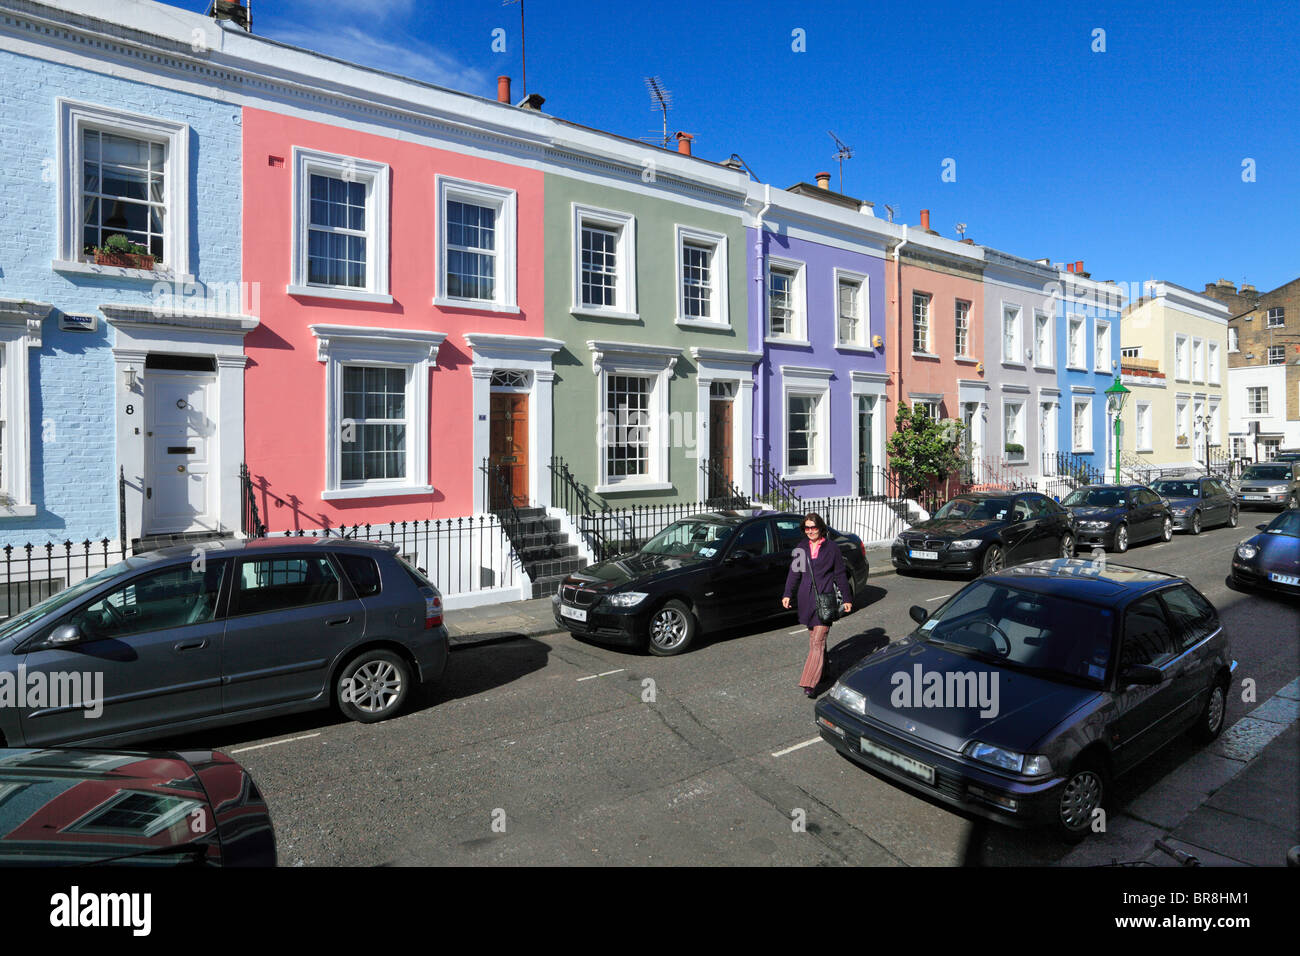 'Hillgate Village' Houses at Notting Hill Gate London - Stock Image